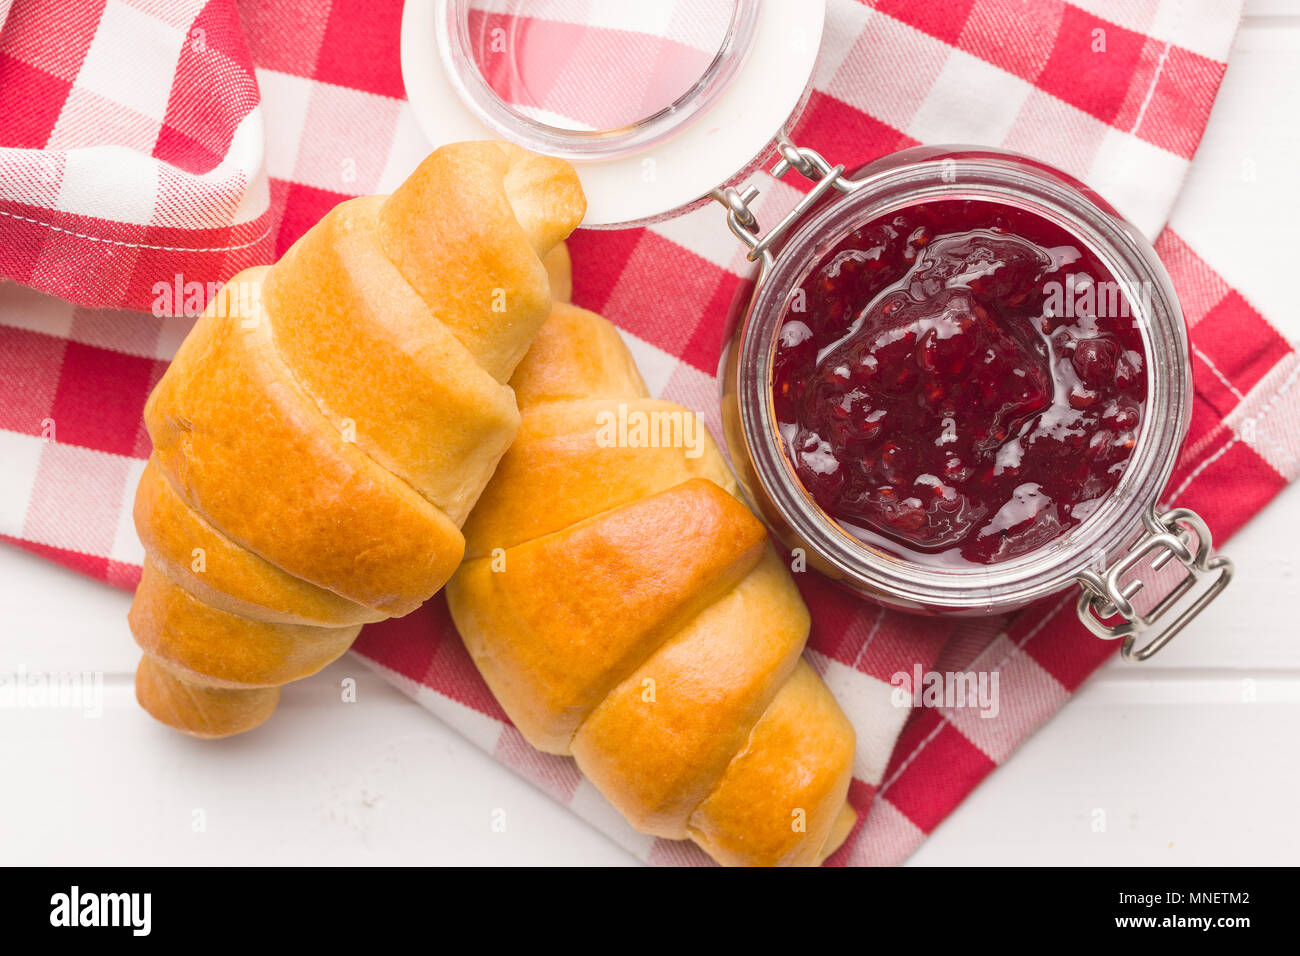 Sweet croissants and jam on checkered napkin. - Stock Image